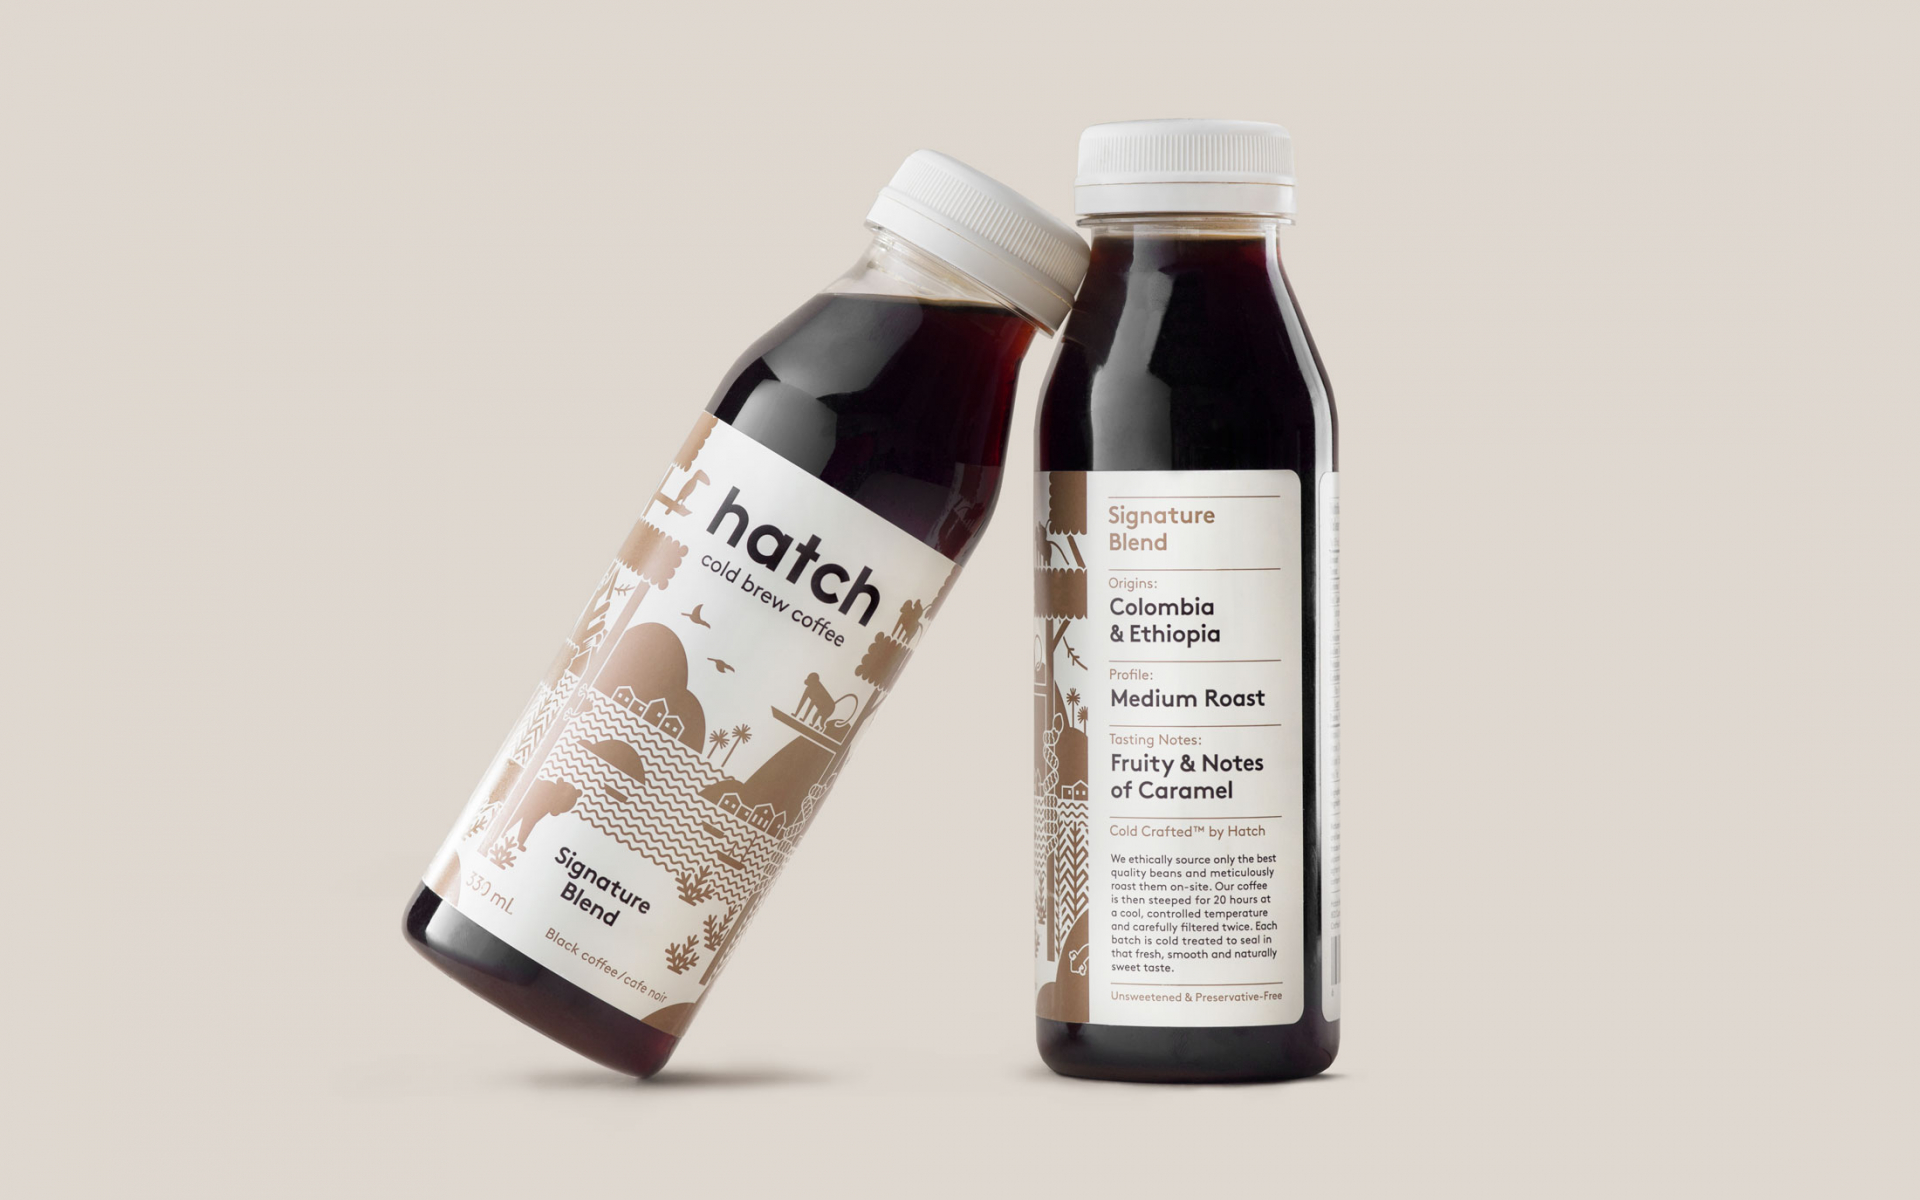 idesign hatchcoldbrew 04